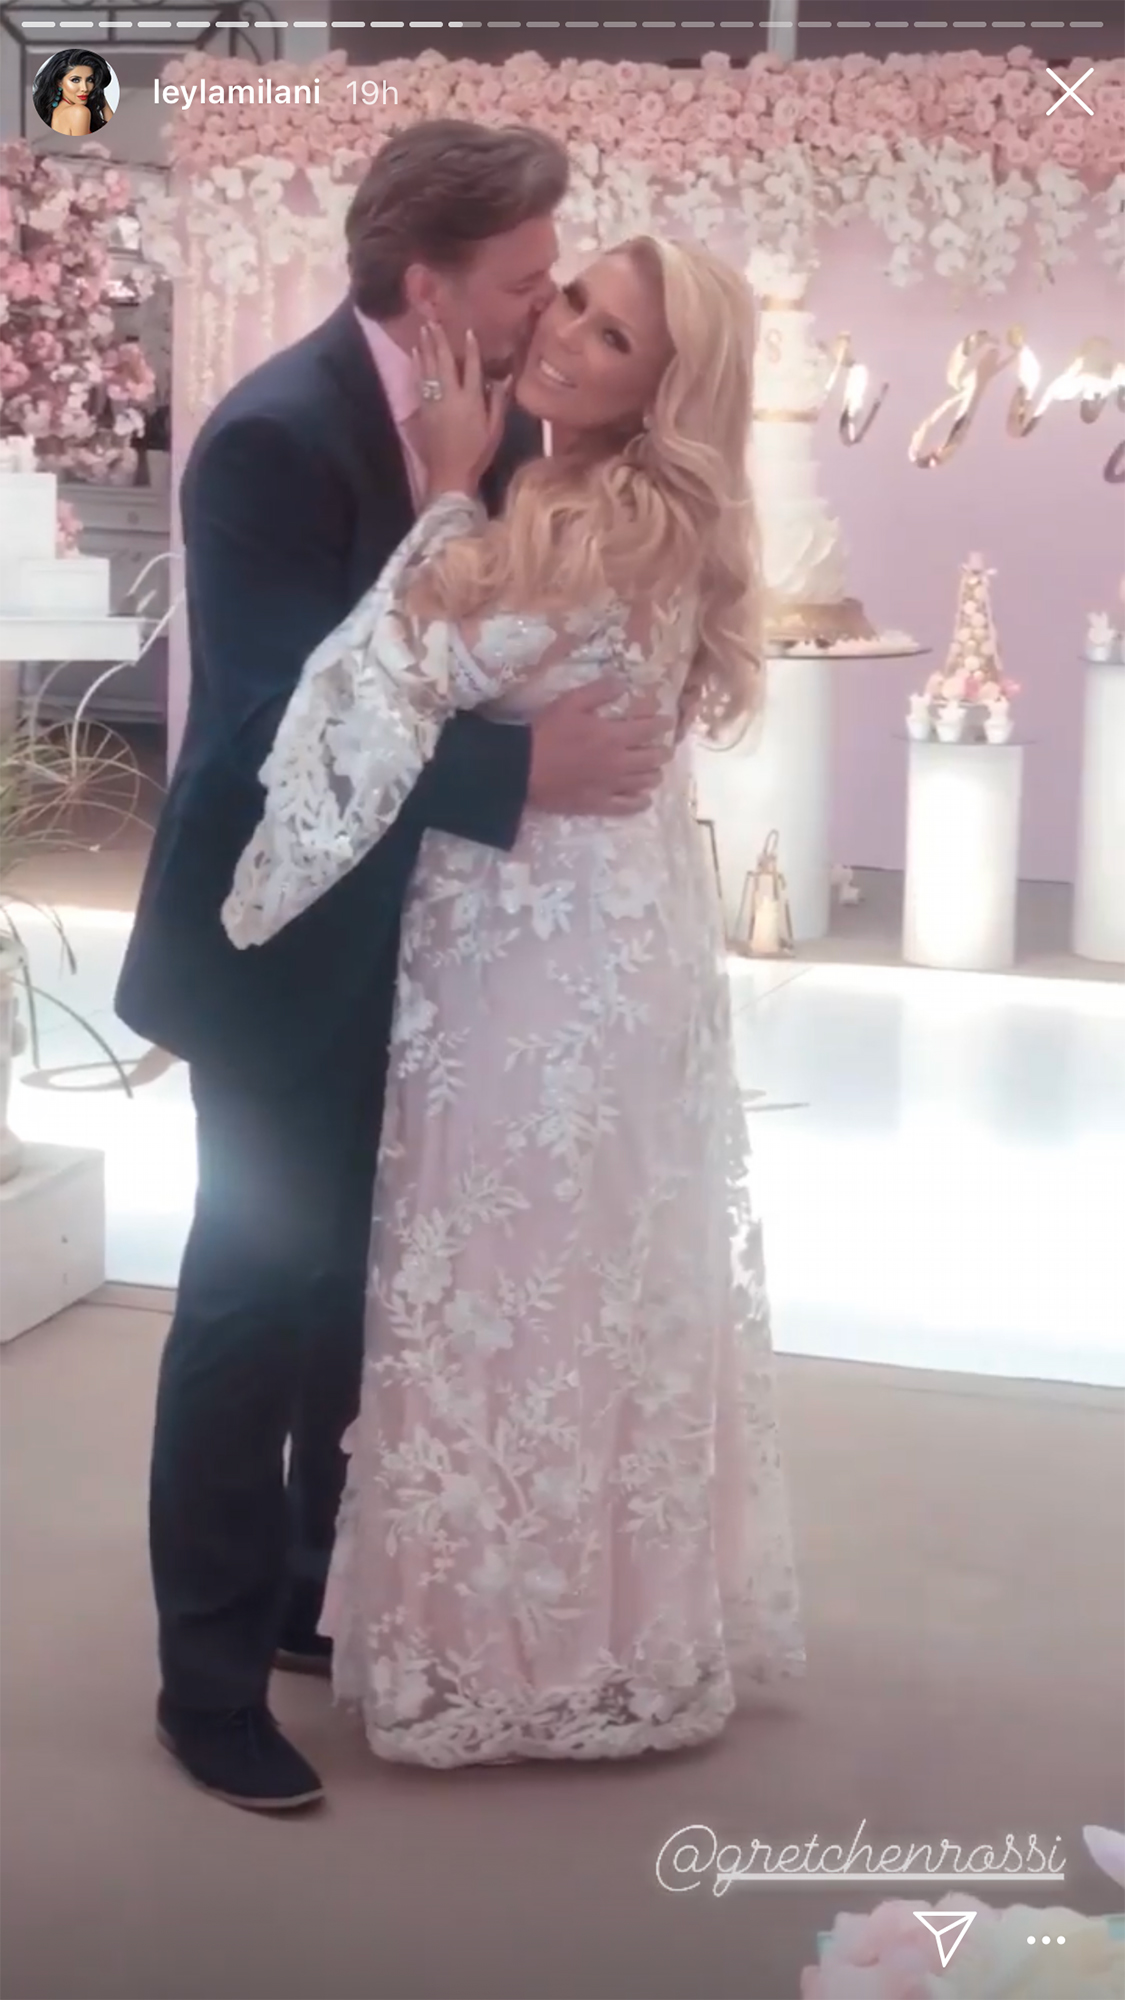 Gretchen Rossi Celebrates Baby Shower - Smiley and his fiancée shared a sweet PDA moment.